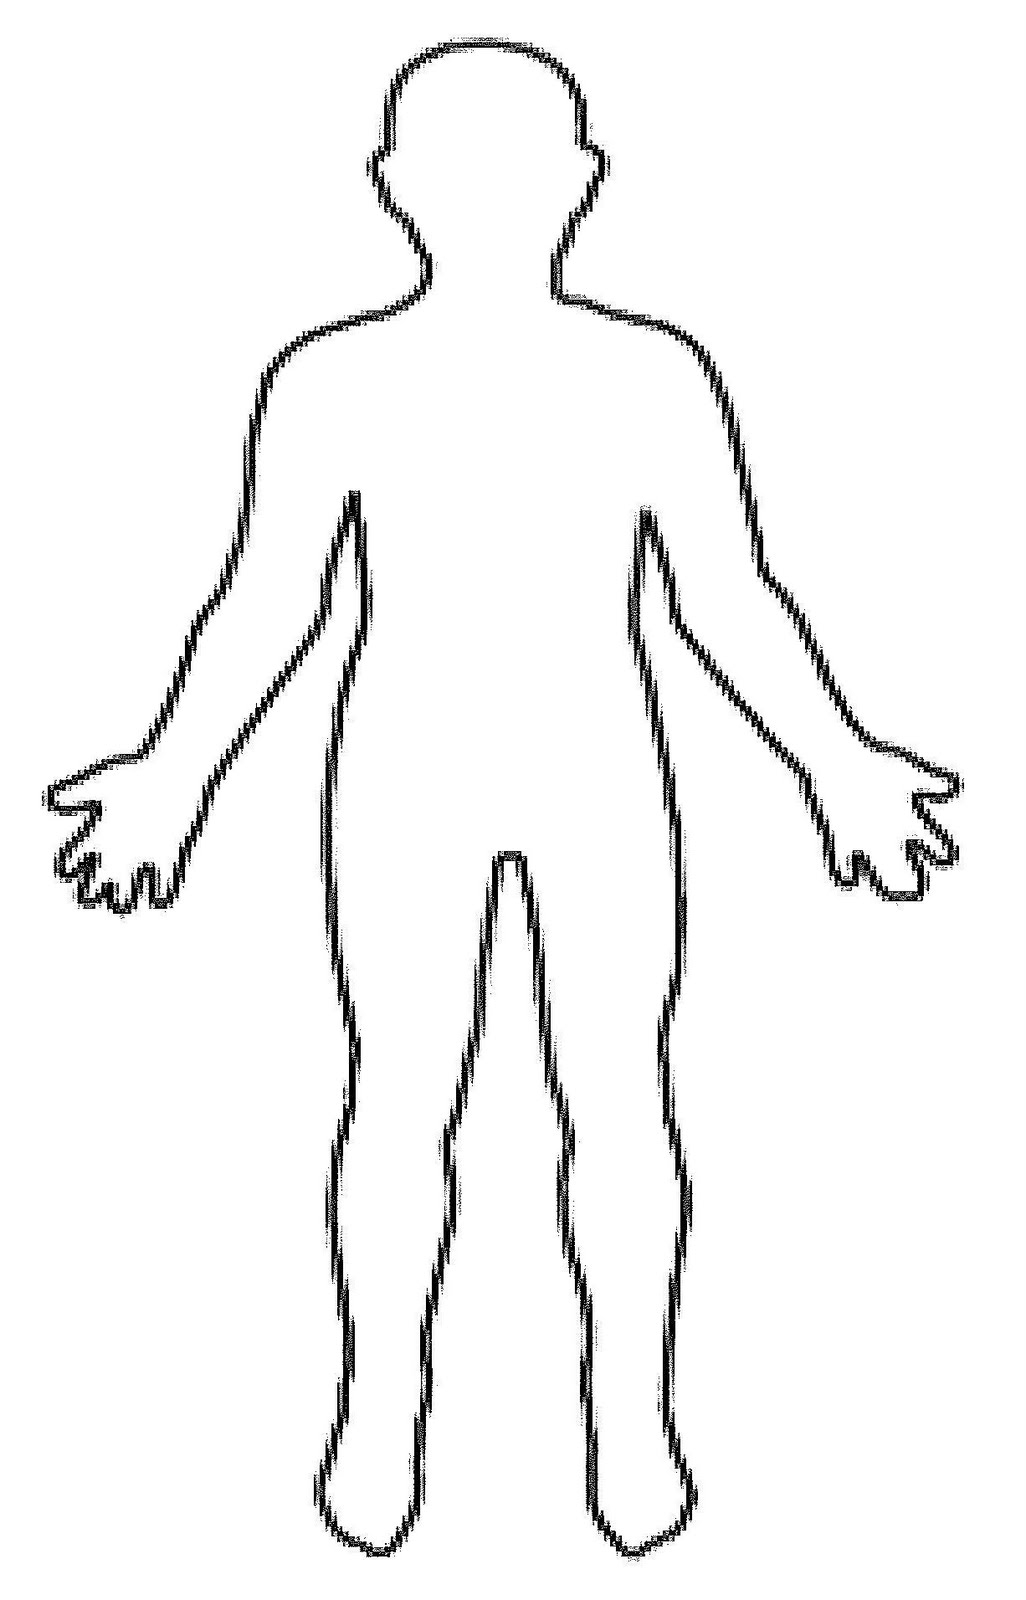 Educations Human Body Clipart.